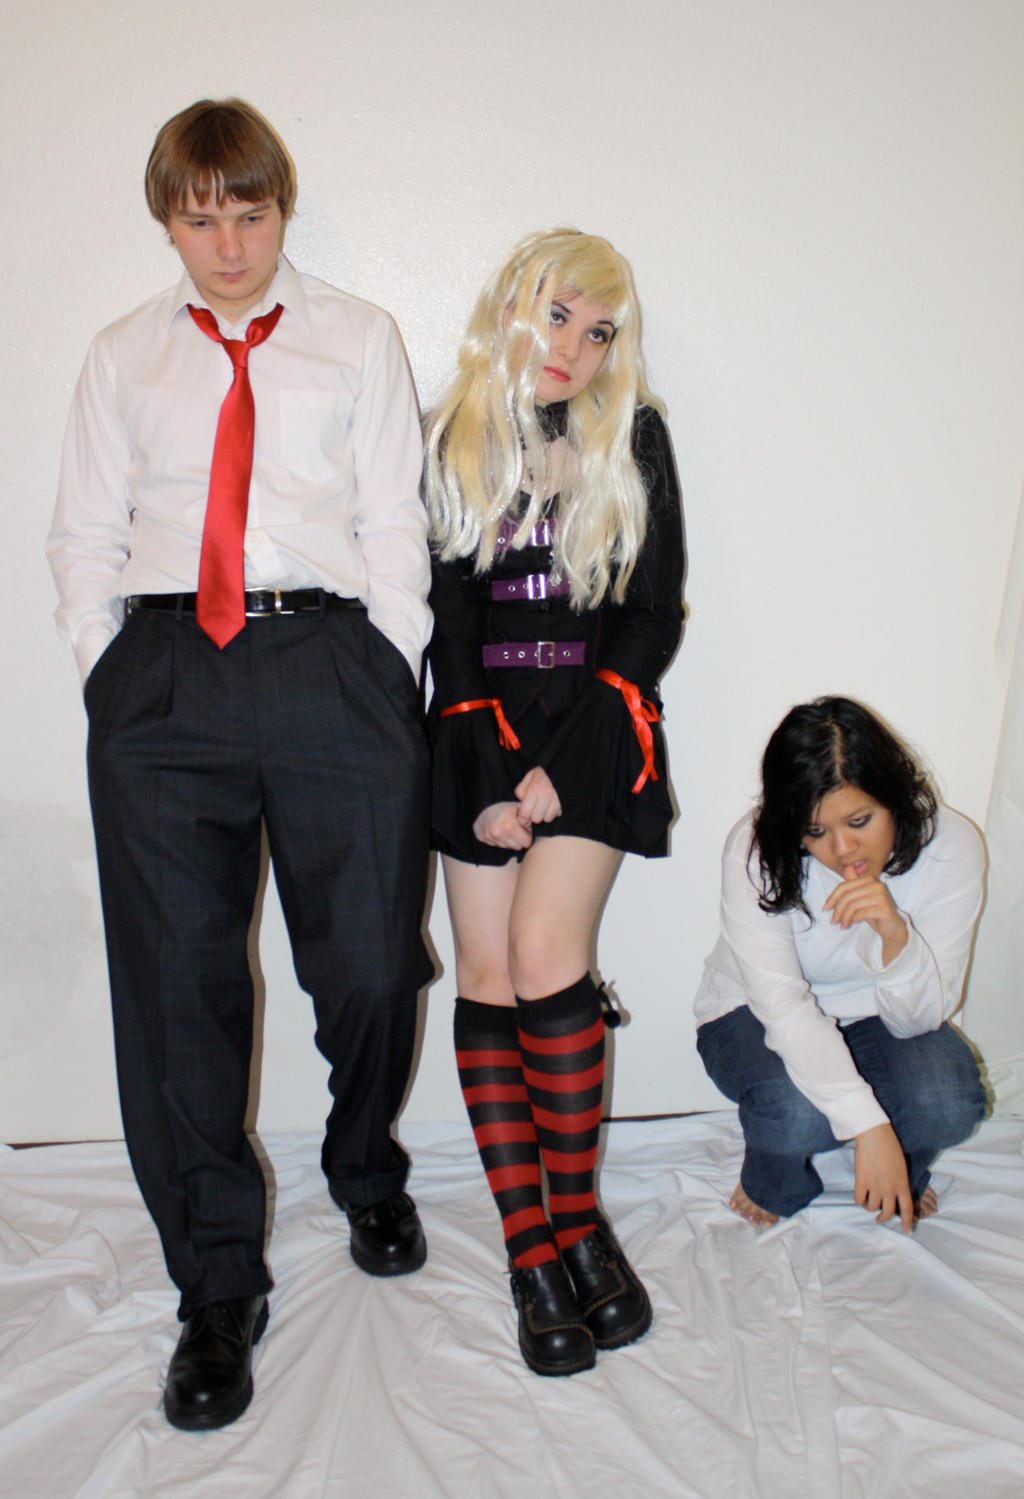 Deathnote group 3 by MajesticStock